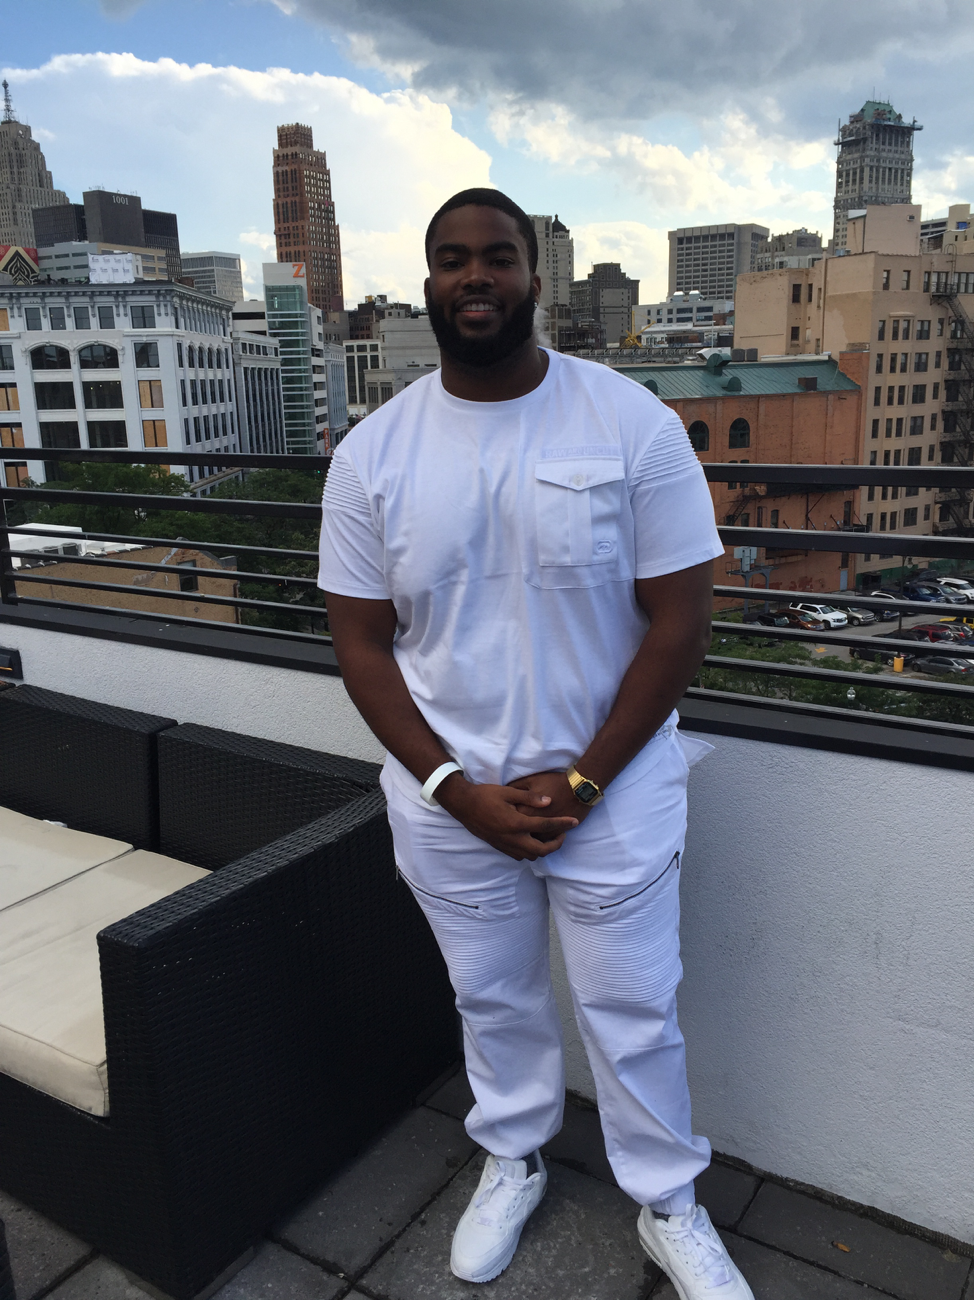 Leo McAfee Jr. found a healthy program he believes in – and is sticking to it even on vacation without feeling as if he's missing out.